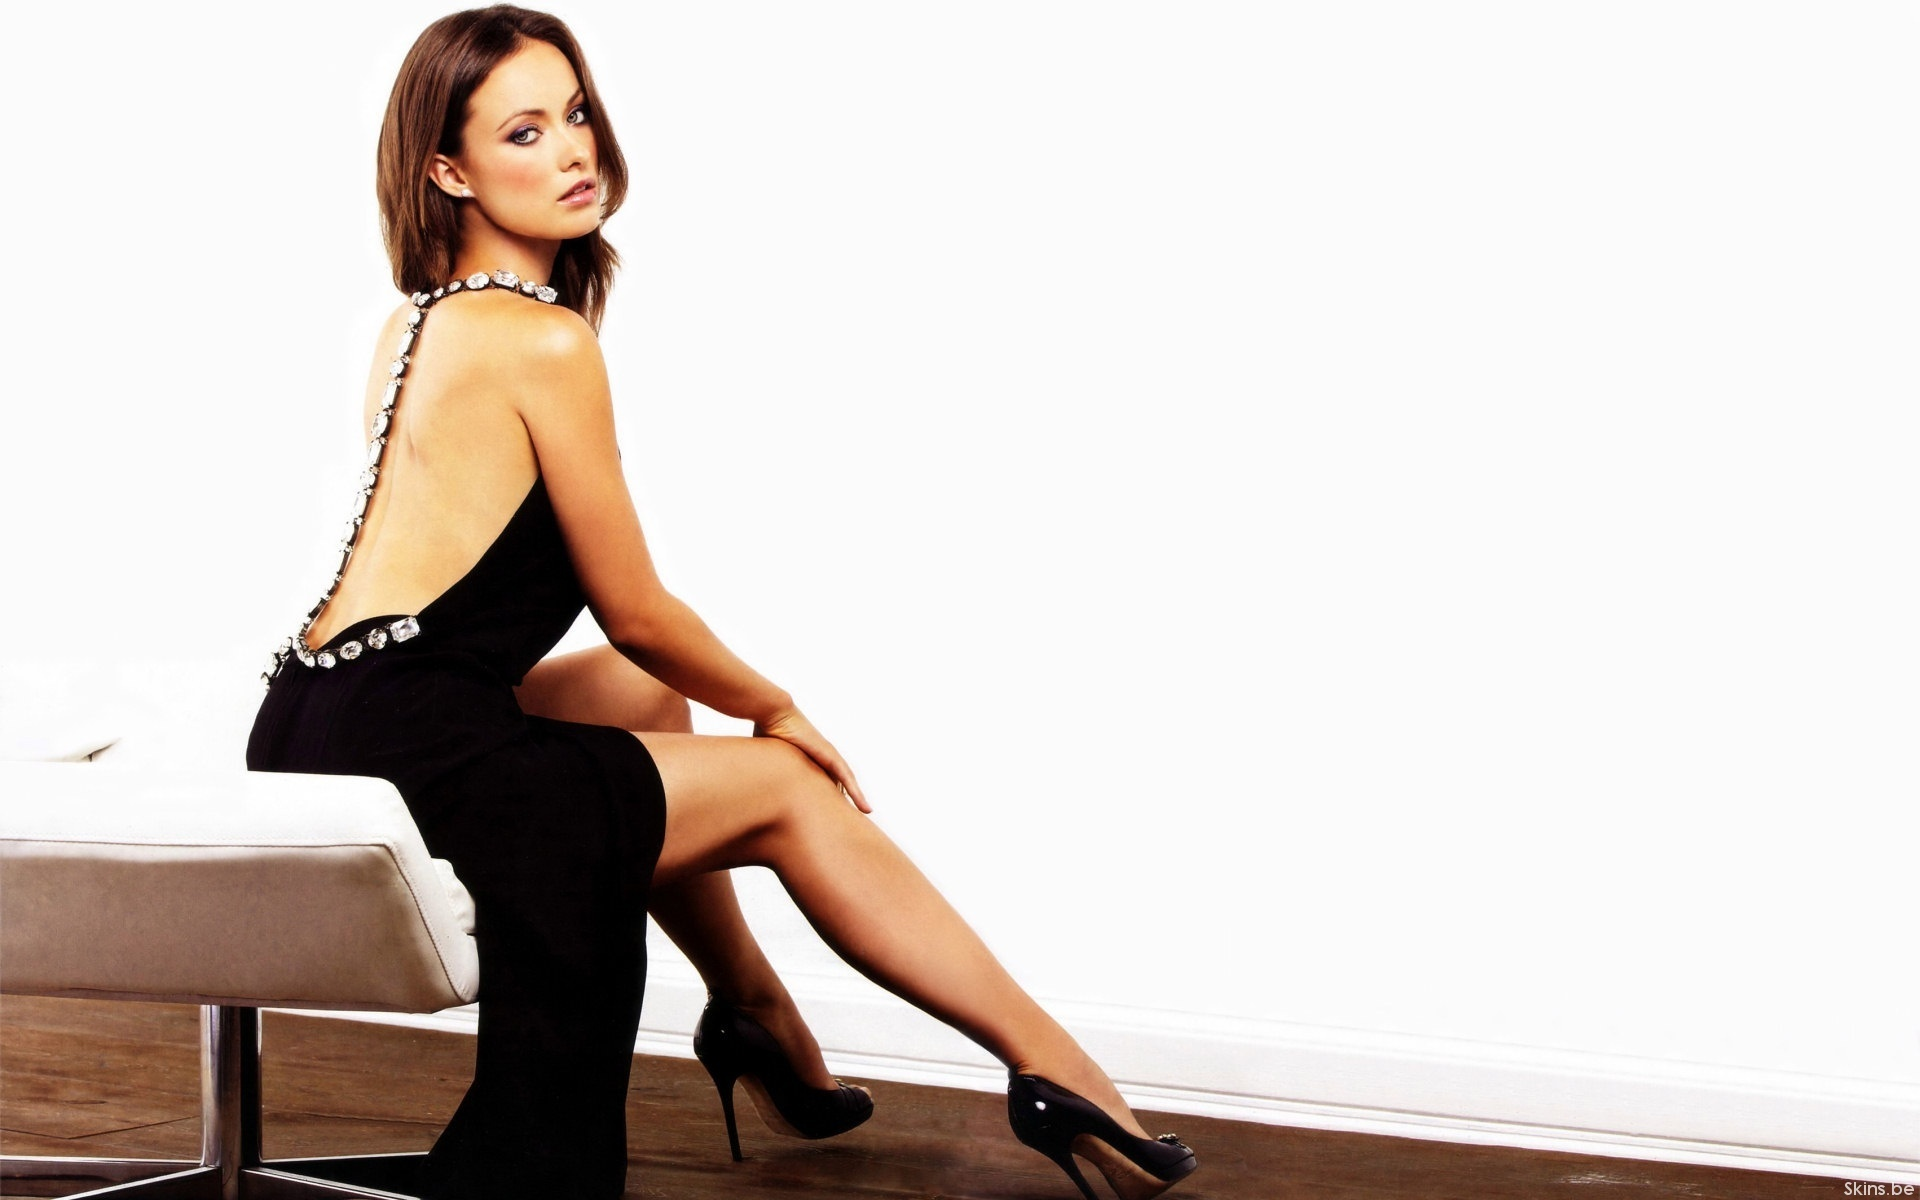 Hot or not (ž) Olivia-3-olivia-wilde-16637590-1920-1200